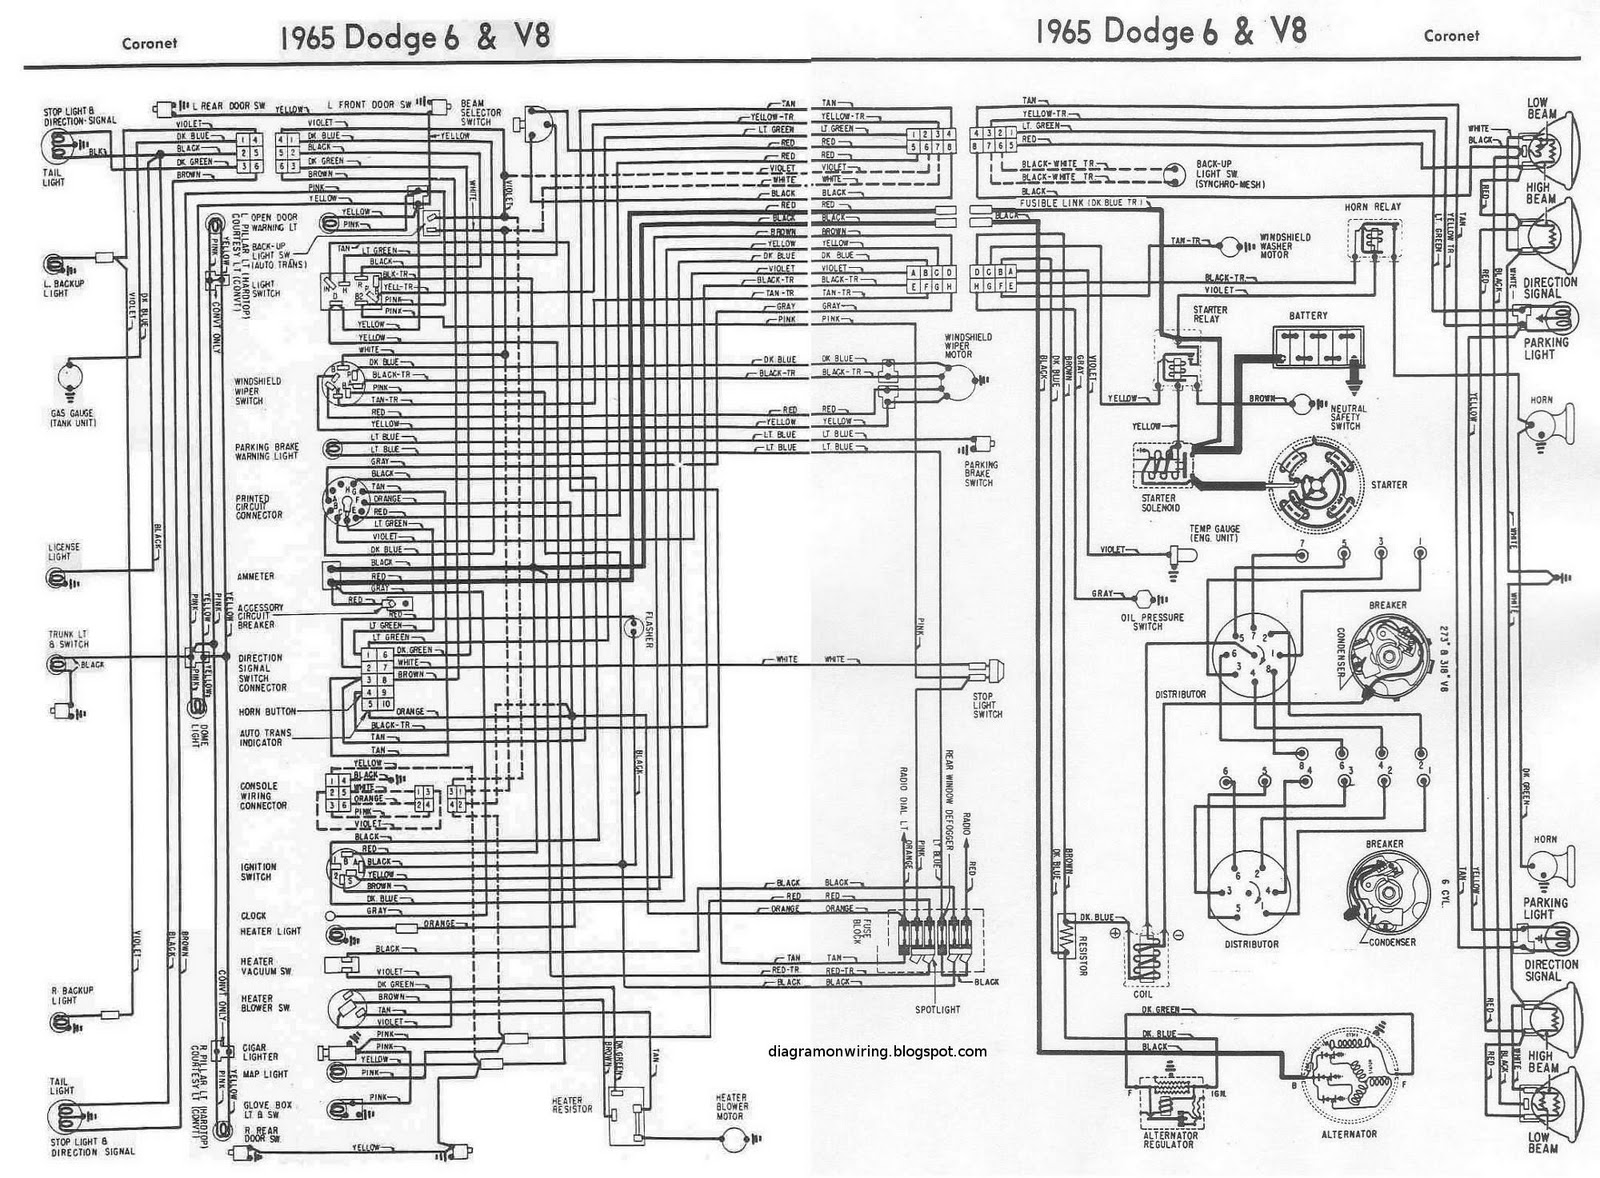 1965+Dodge+6+and+V8+Coronet+Complete+Electrical+Wiring+Diagram dodge 6 and v8 coronet 1965 complete wiring diagram all about 1967 Plymouth Fury Wiring-Diagram at bakdesigns.co